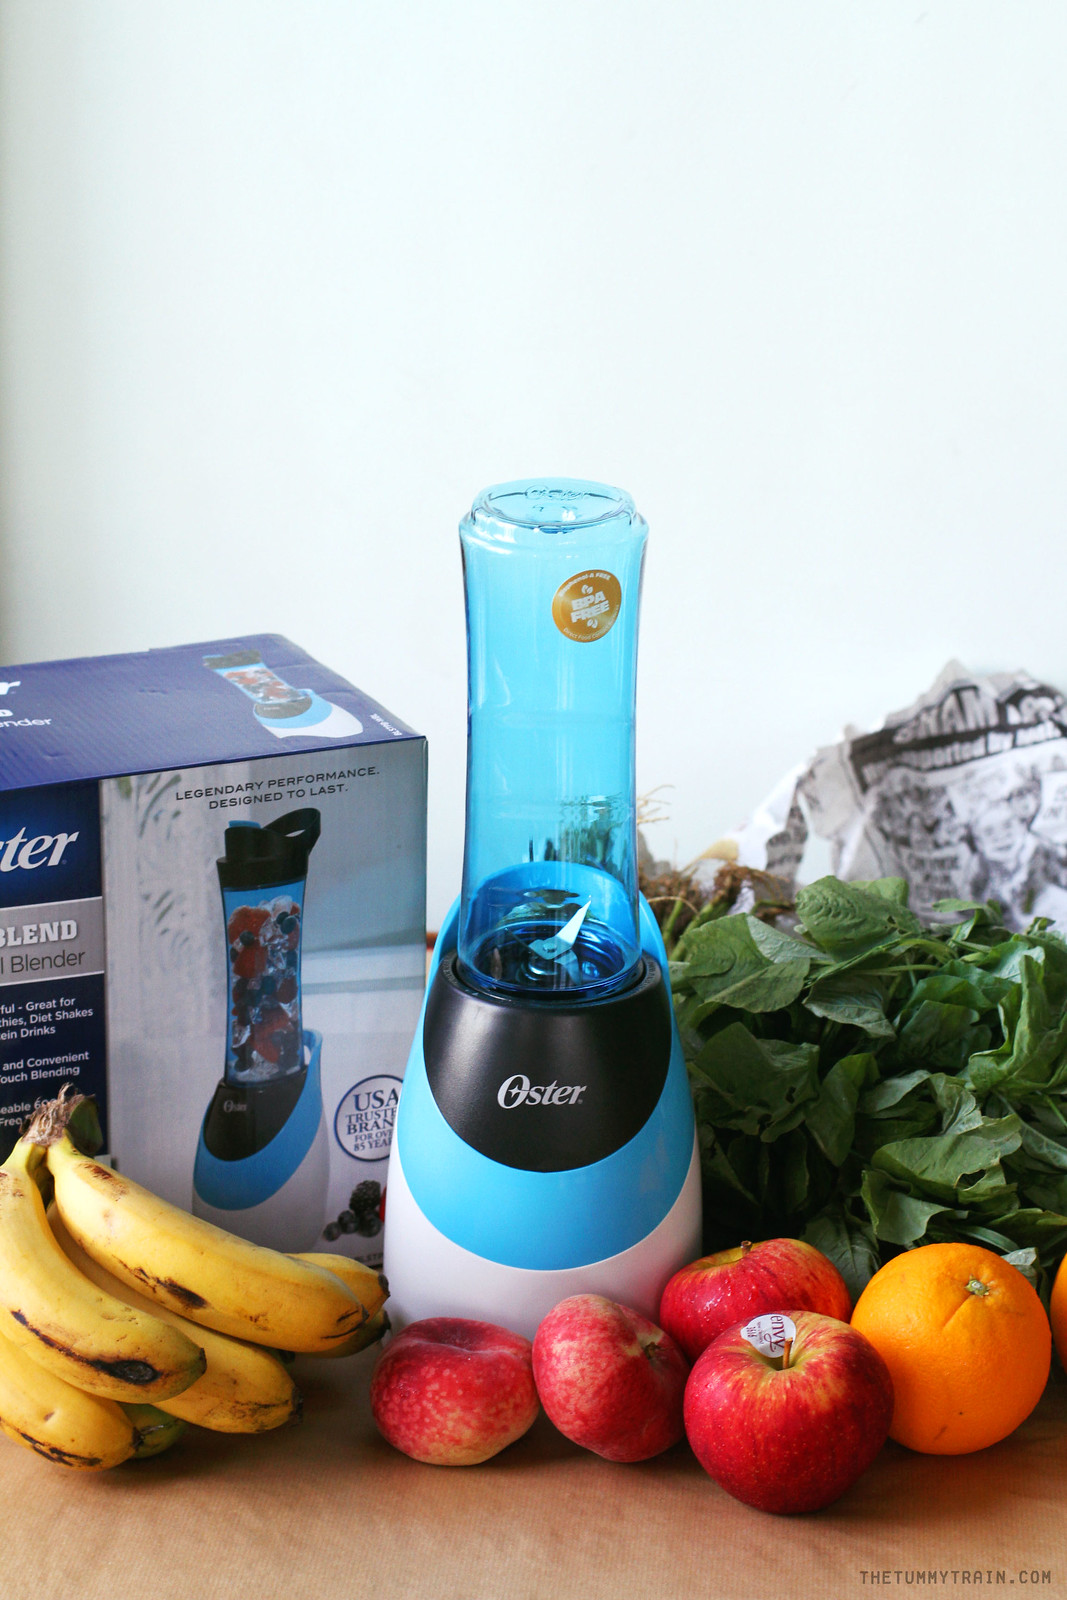 27190290292 15d505d205 h - A review on the Oster MyBlend Personal Blender + Giveaway!